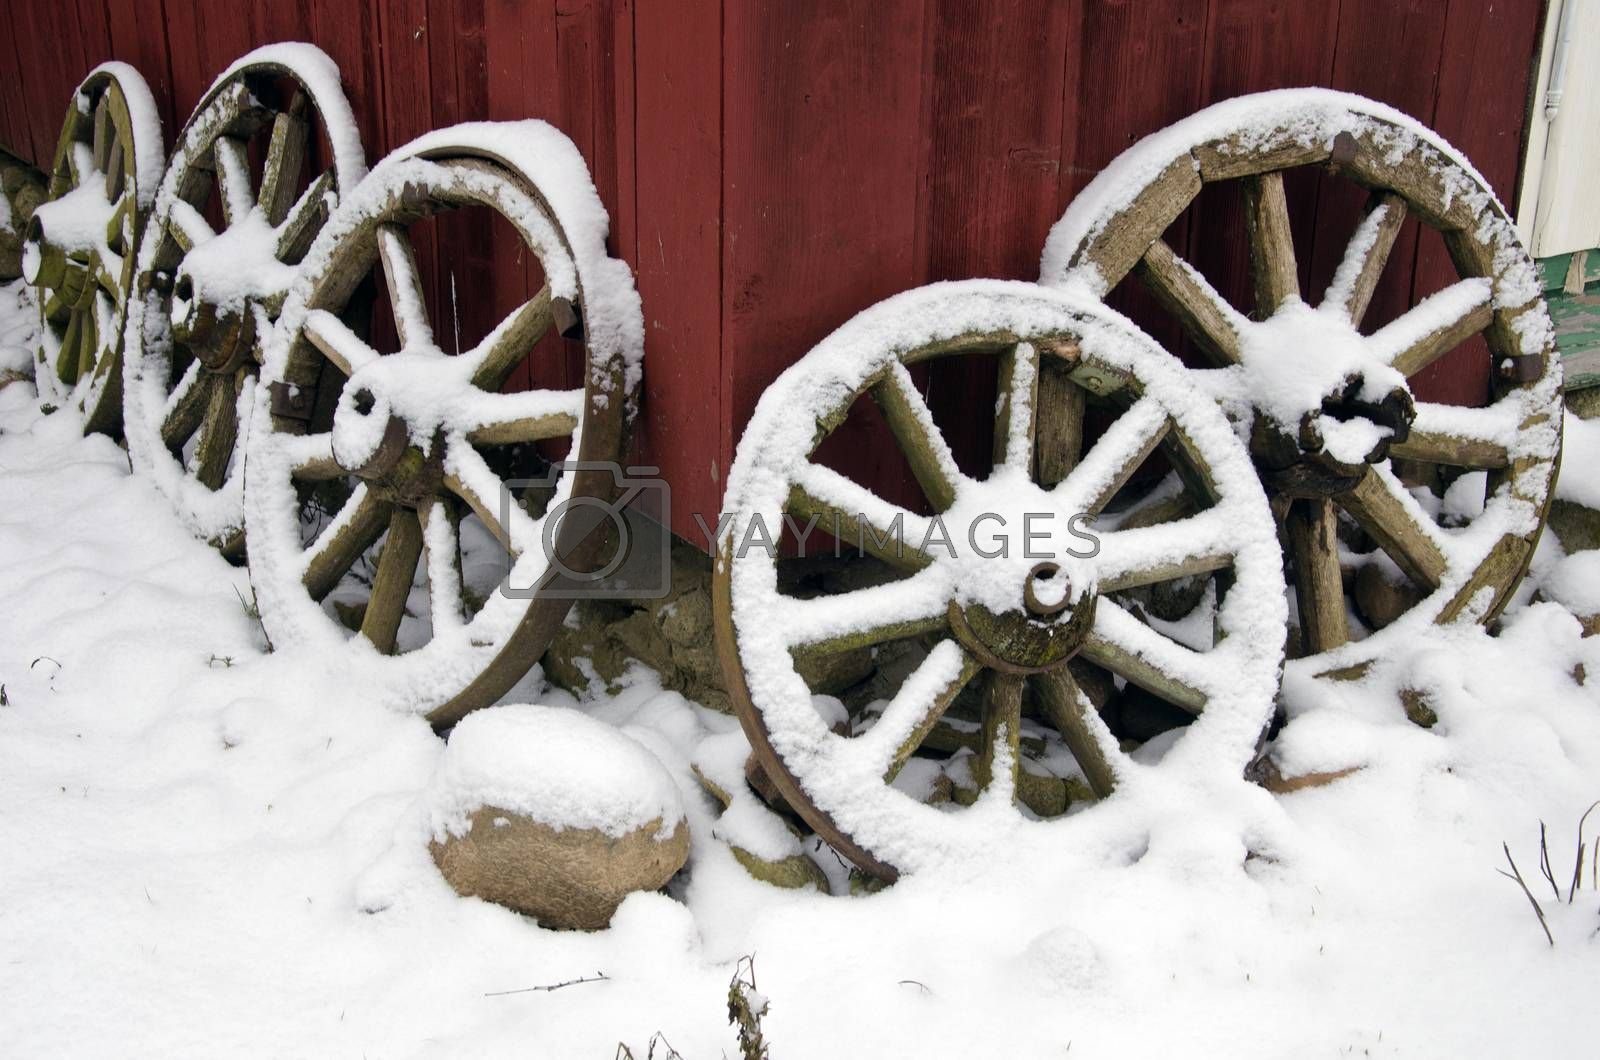 antique horse carriage wheels collection near farm house and winter snow